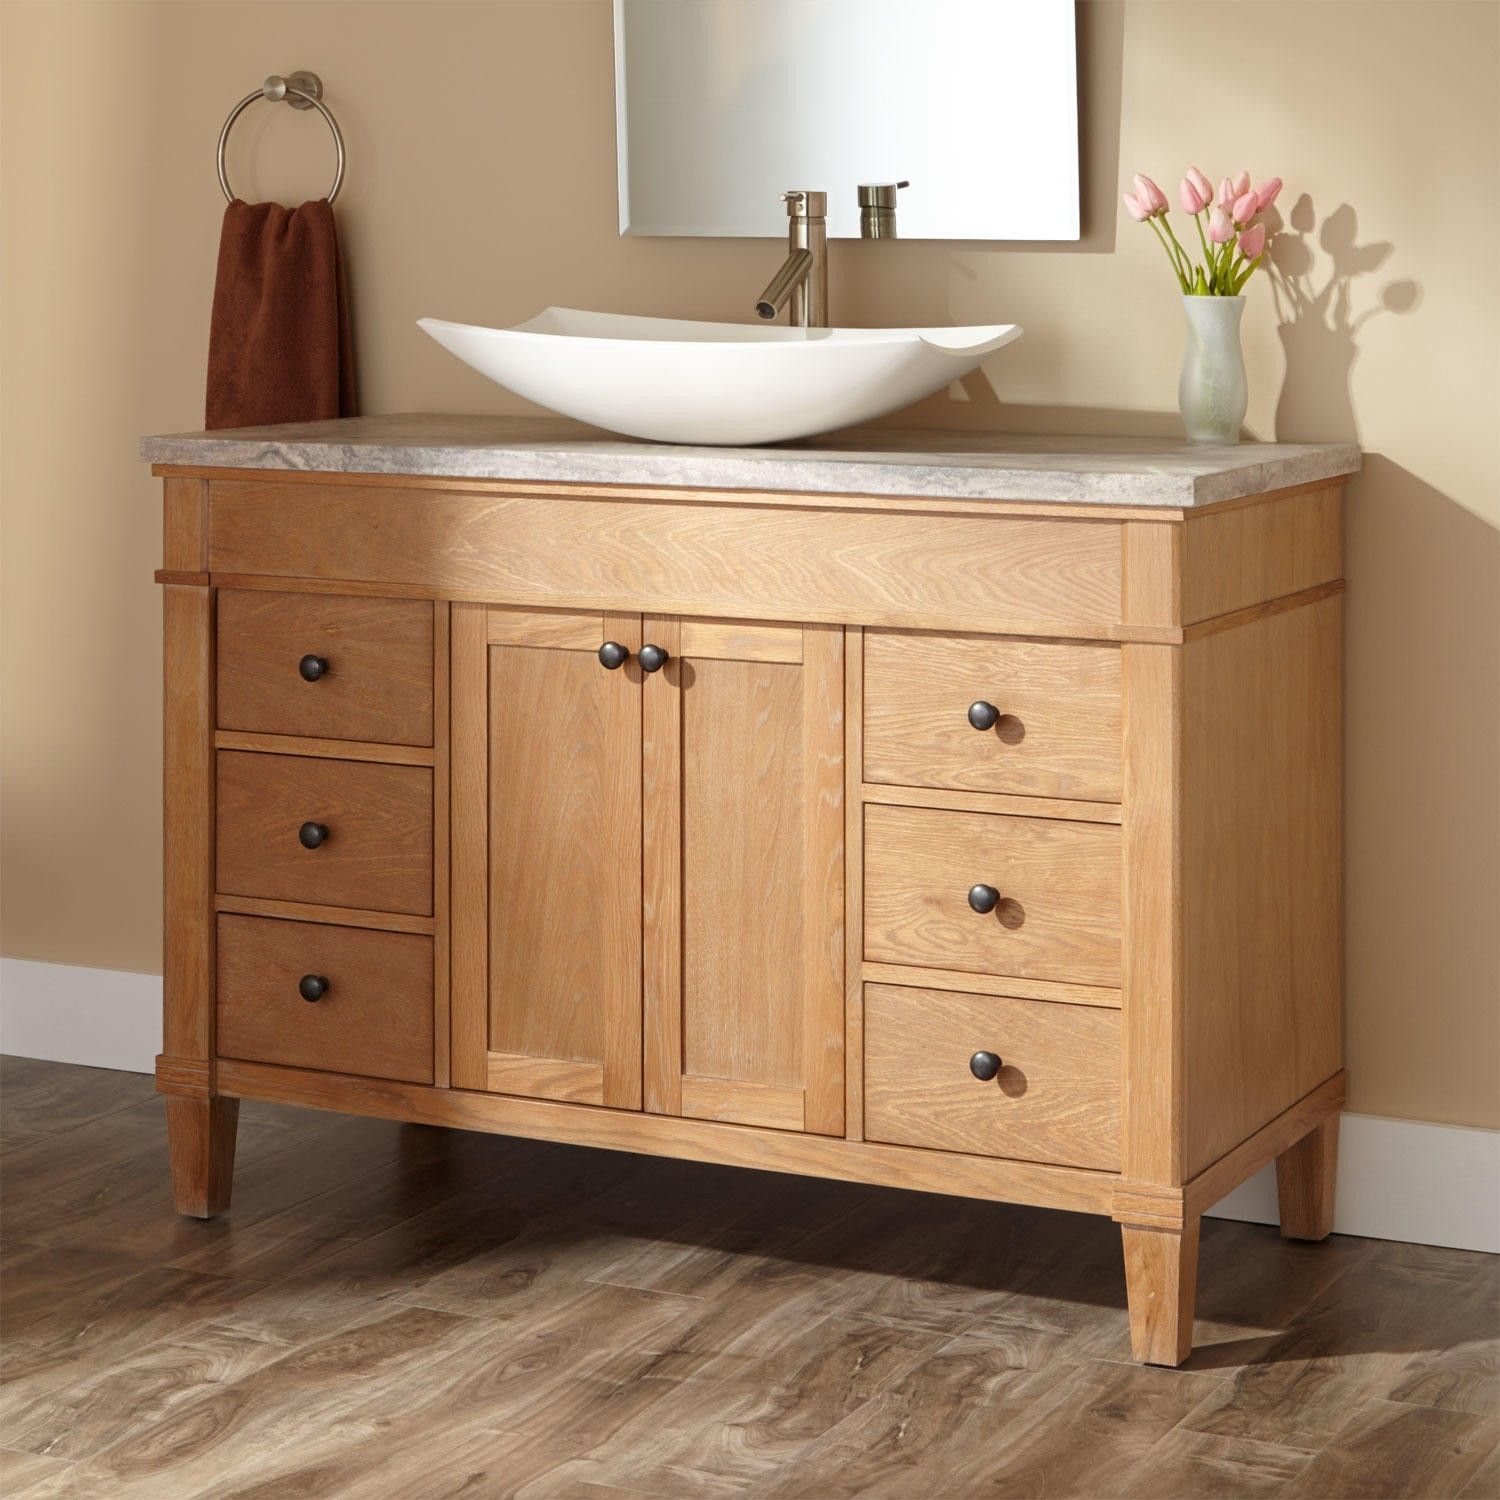 off b vanity town mount sink cabinets bathroom sale floating wall unfinished cabinet for set ideas cape vessel share